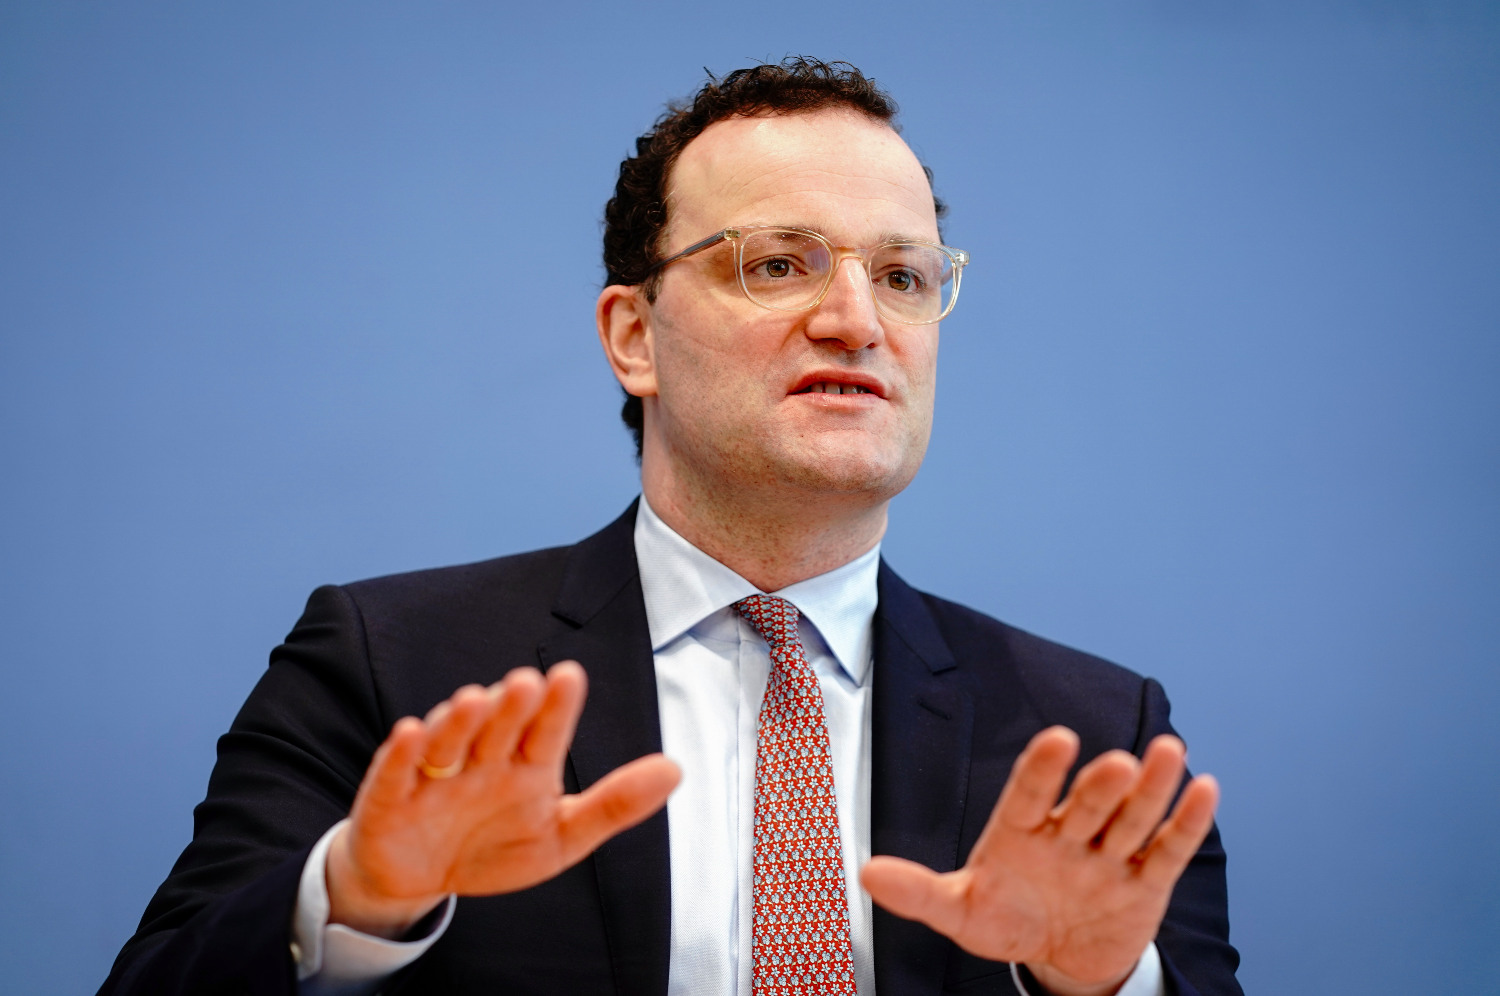 'If Germany opens up now we'll gamble away our success,' warns Health Minister